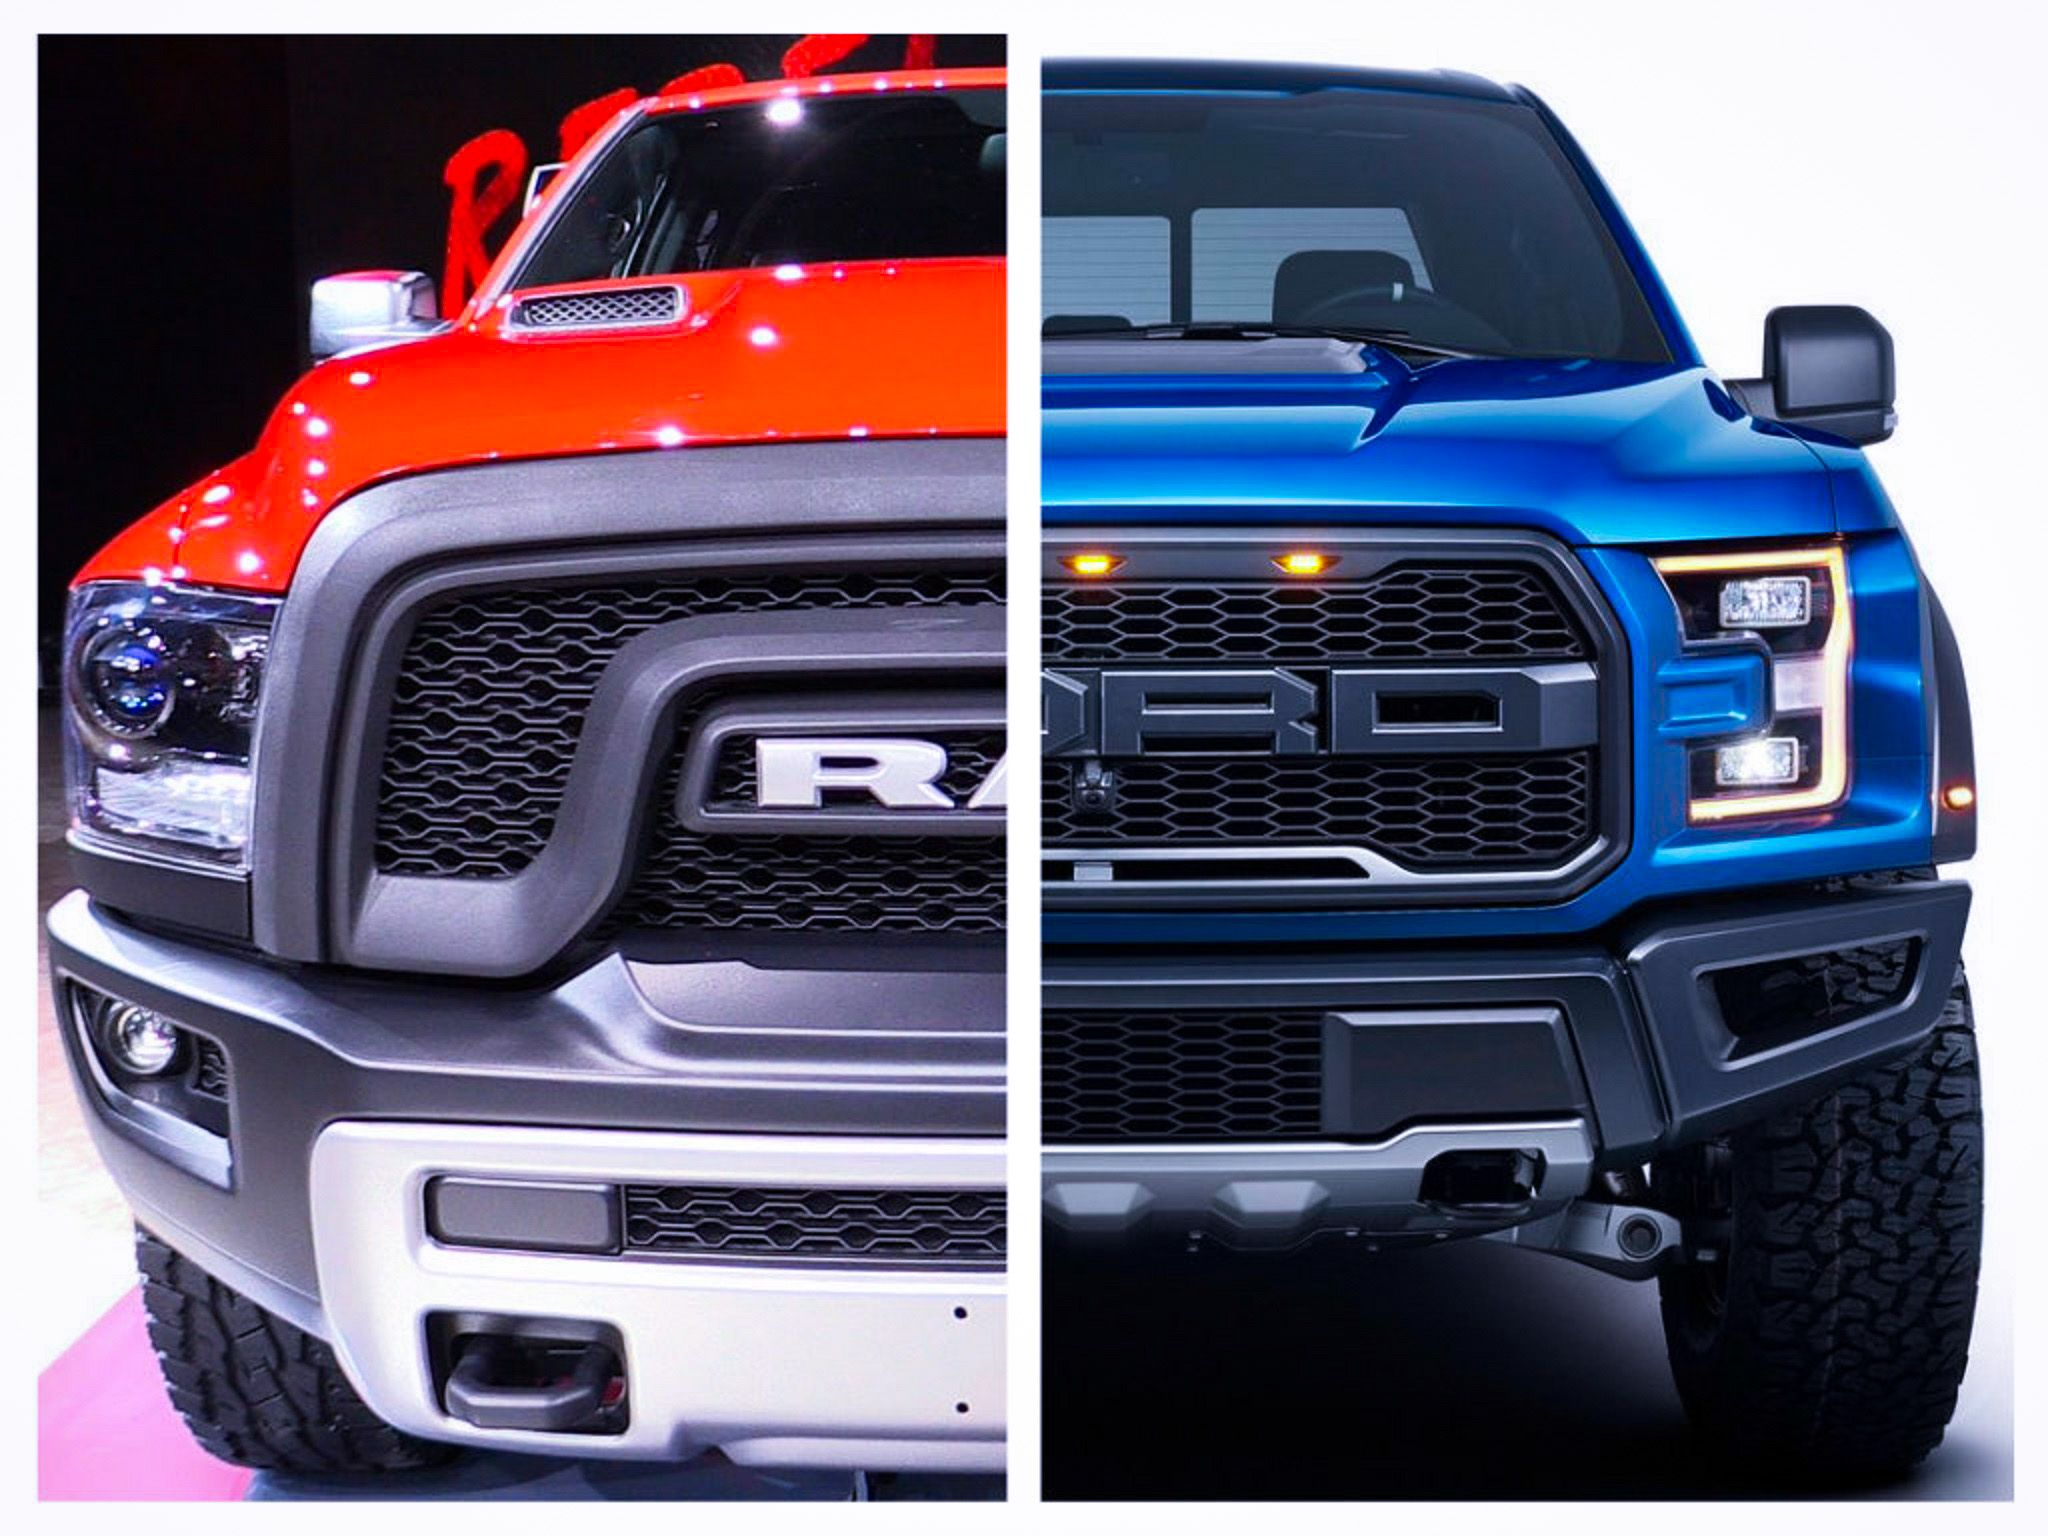 2017 ford f 150 raptor vs 2016 ram 1500 rebel stuff to buy pinterest 2016 ram ford and 4x4